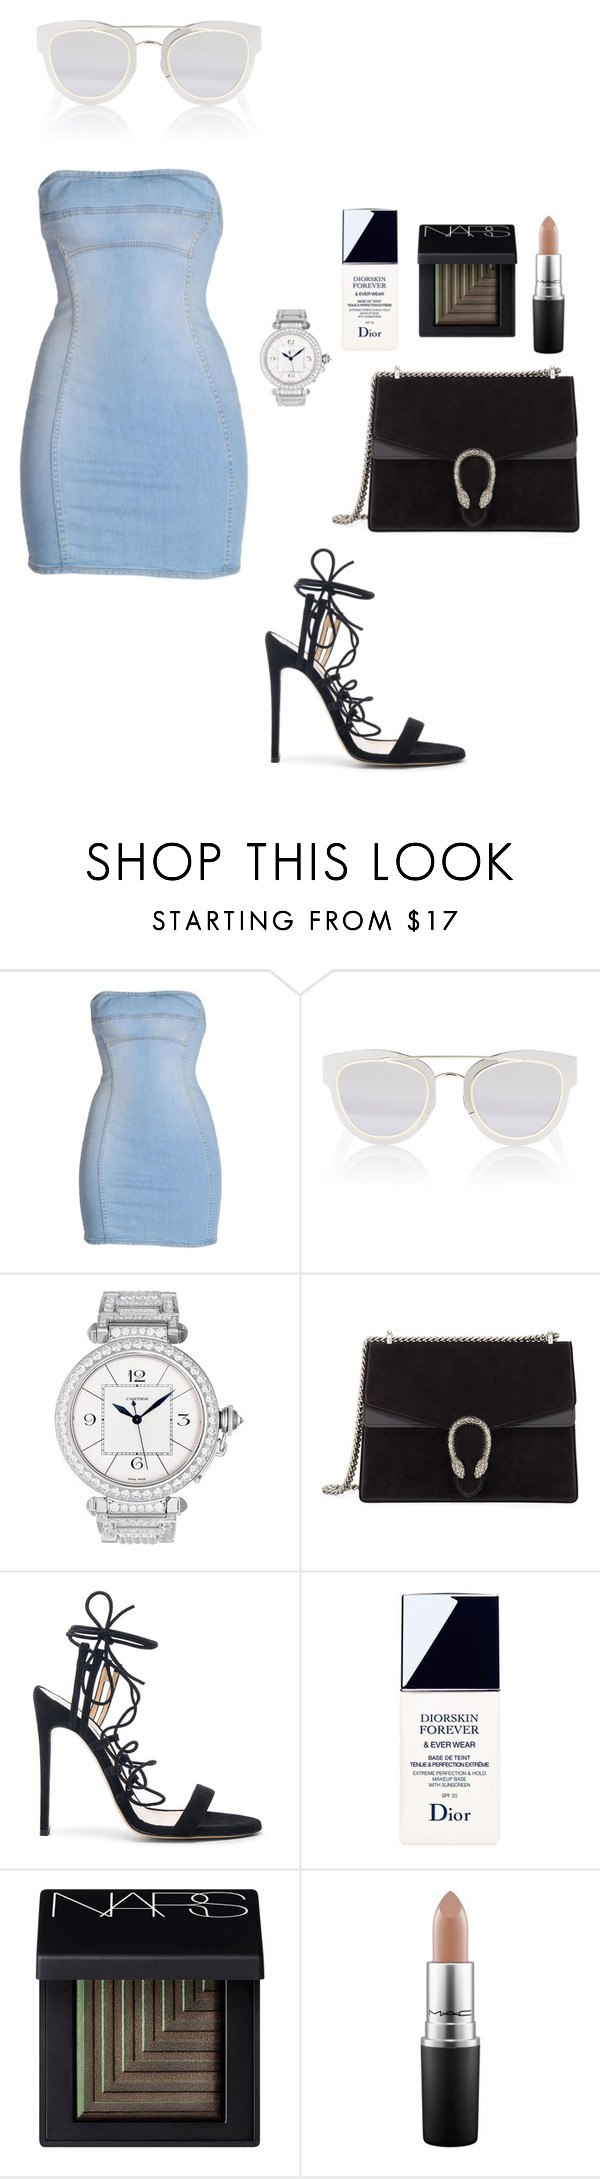 """""""Untitled #1726"""" by whosay ❤ liked on Polyvore featuring Dsquared2, Christian Dior, Cartier, Gucci, Bionda Castana, NARS Cosmetics and MAC Cosmetics"""